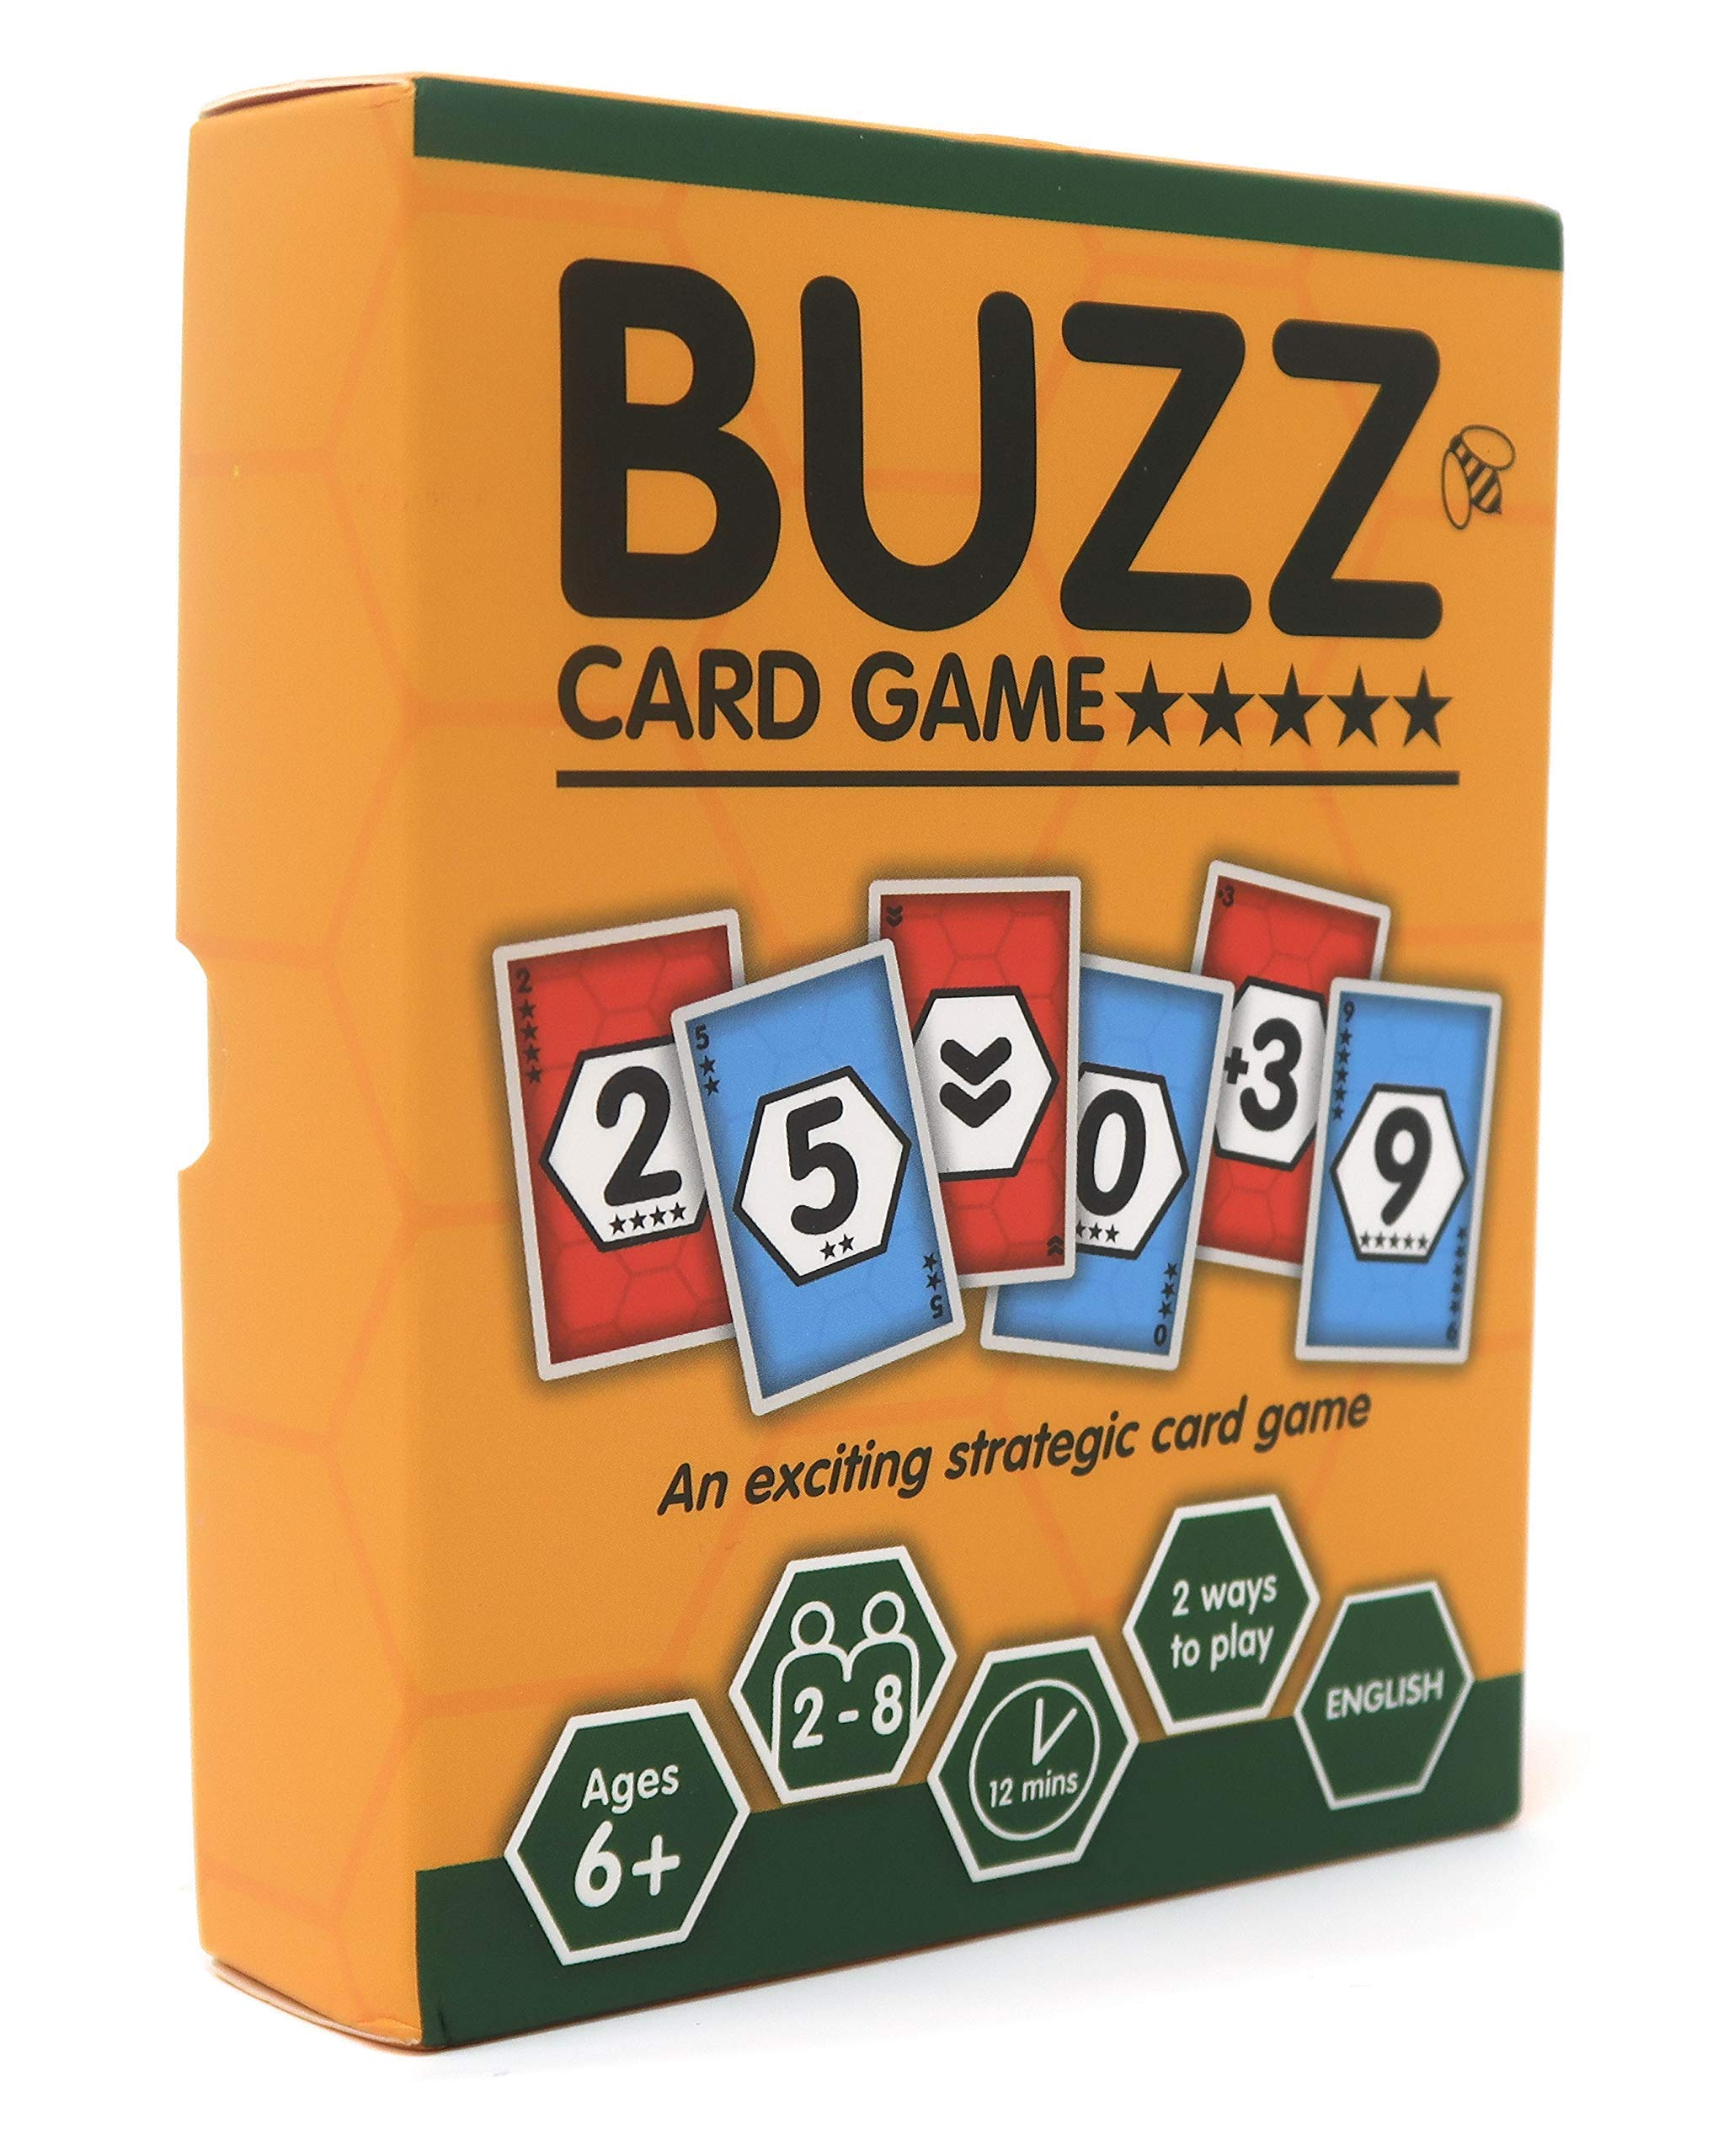 for Kids and Adults with 6 Suits of 9 Cards You can Play All Your Favourite Playing Card Games and New Ones in a Fun New Way with This Poker Sized Card Deck Wild Card Games The Playing Cards Revolution 6 Suits